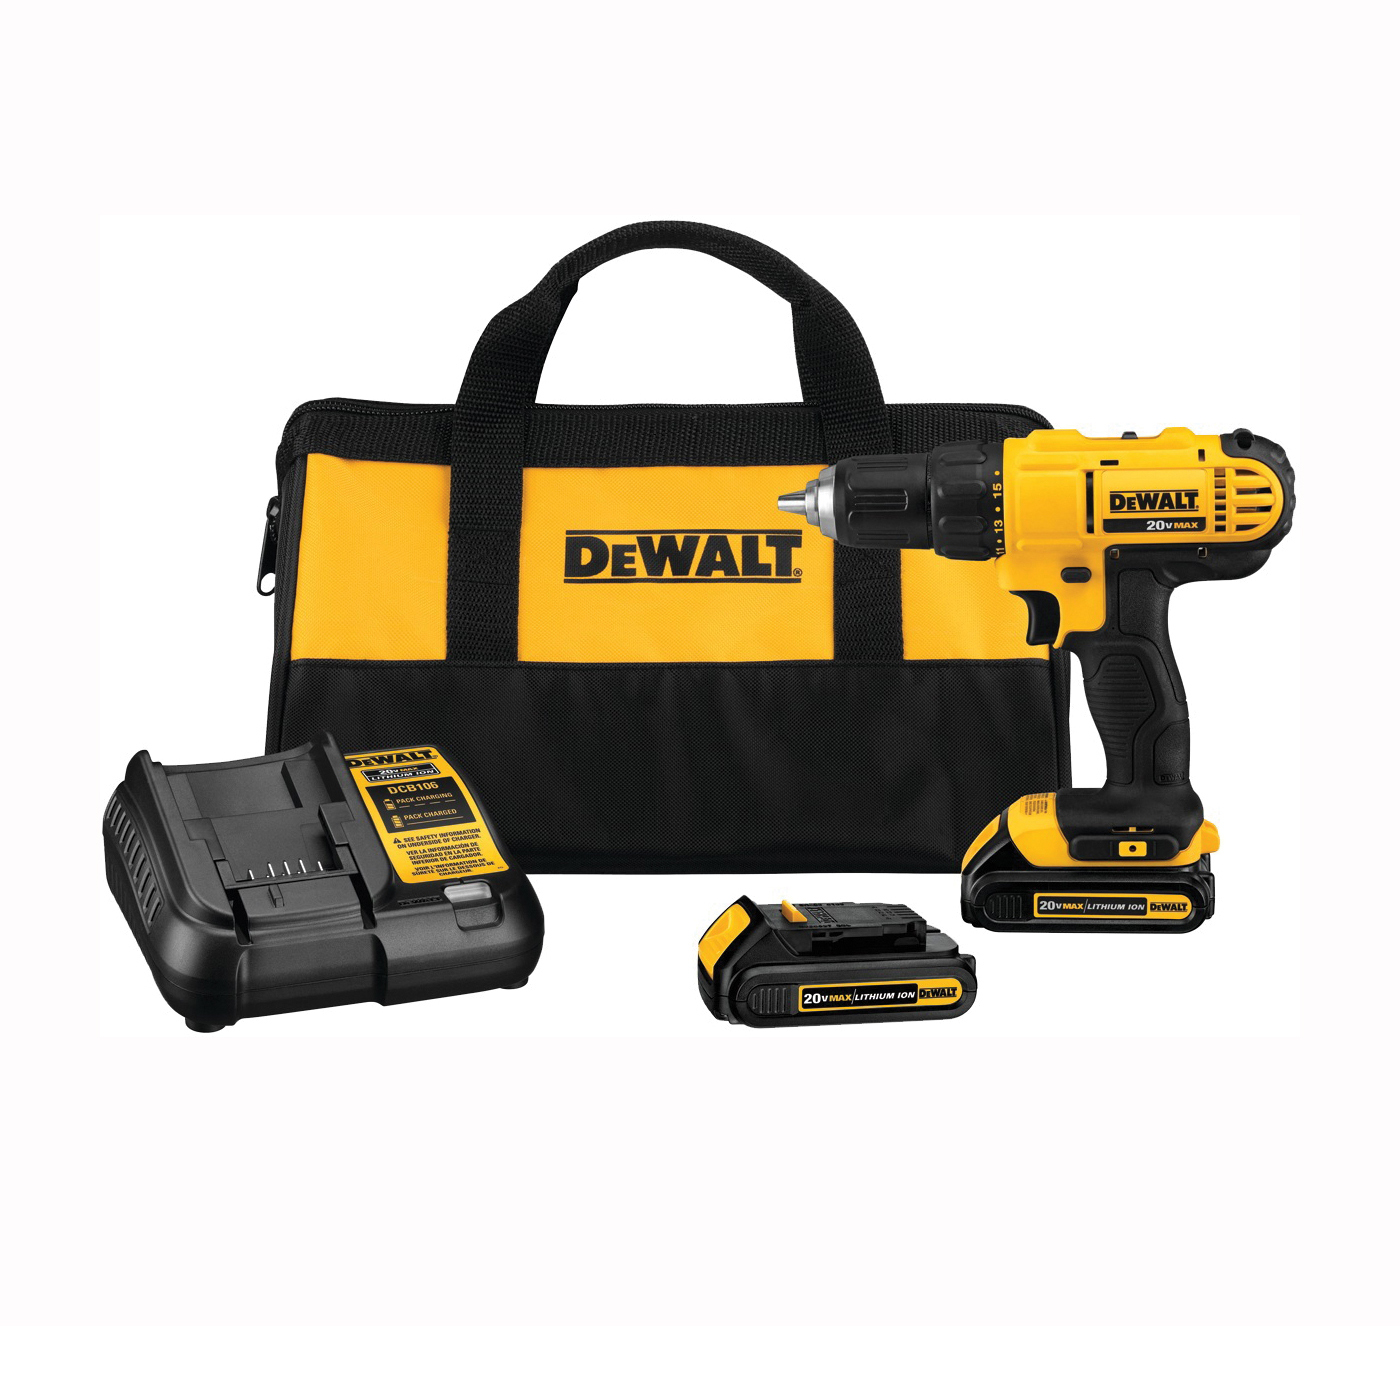 Picture of DeWALT DCD771C2 Drill/Driver Kit, Kit, 20 V Battery, 1/2 in Chuck, Keyless Chuck, Battery Included: Yes